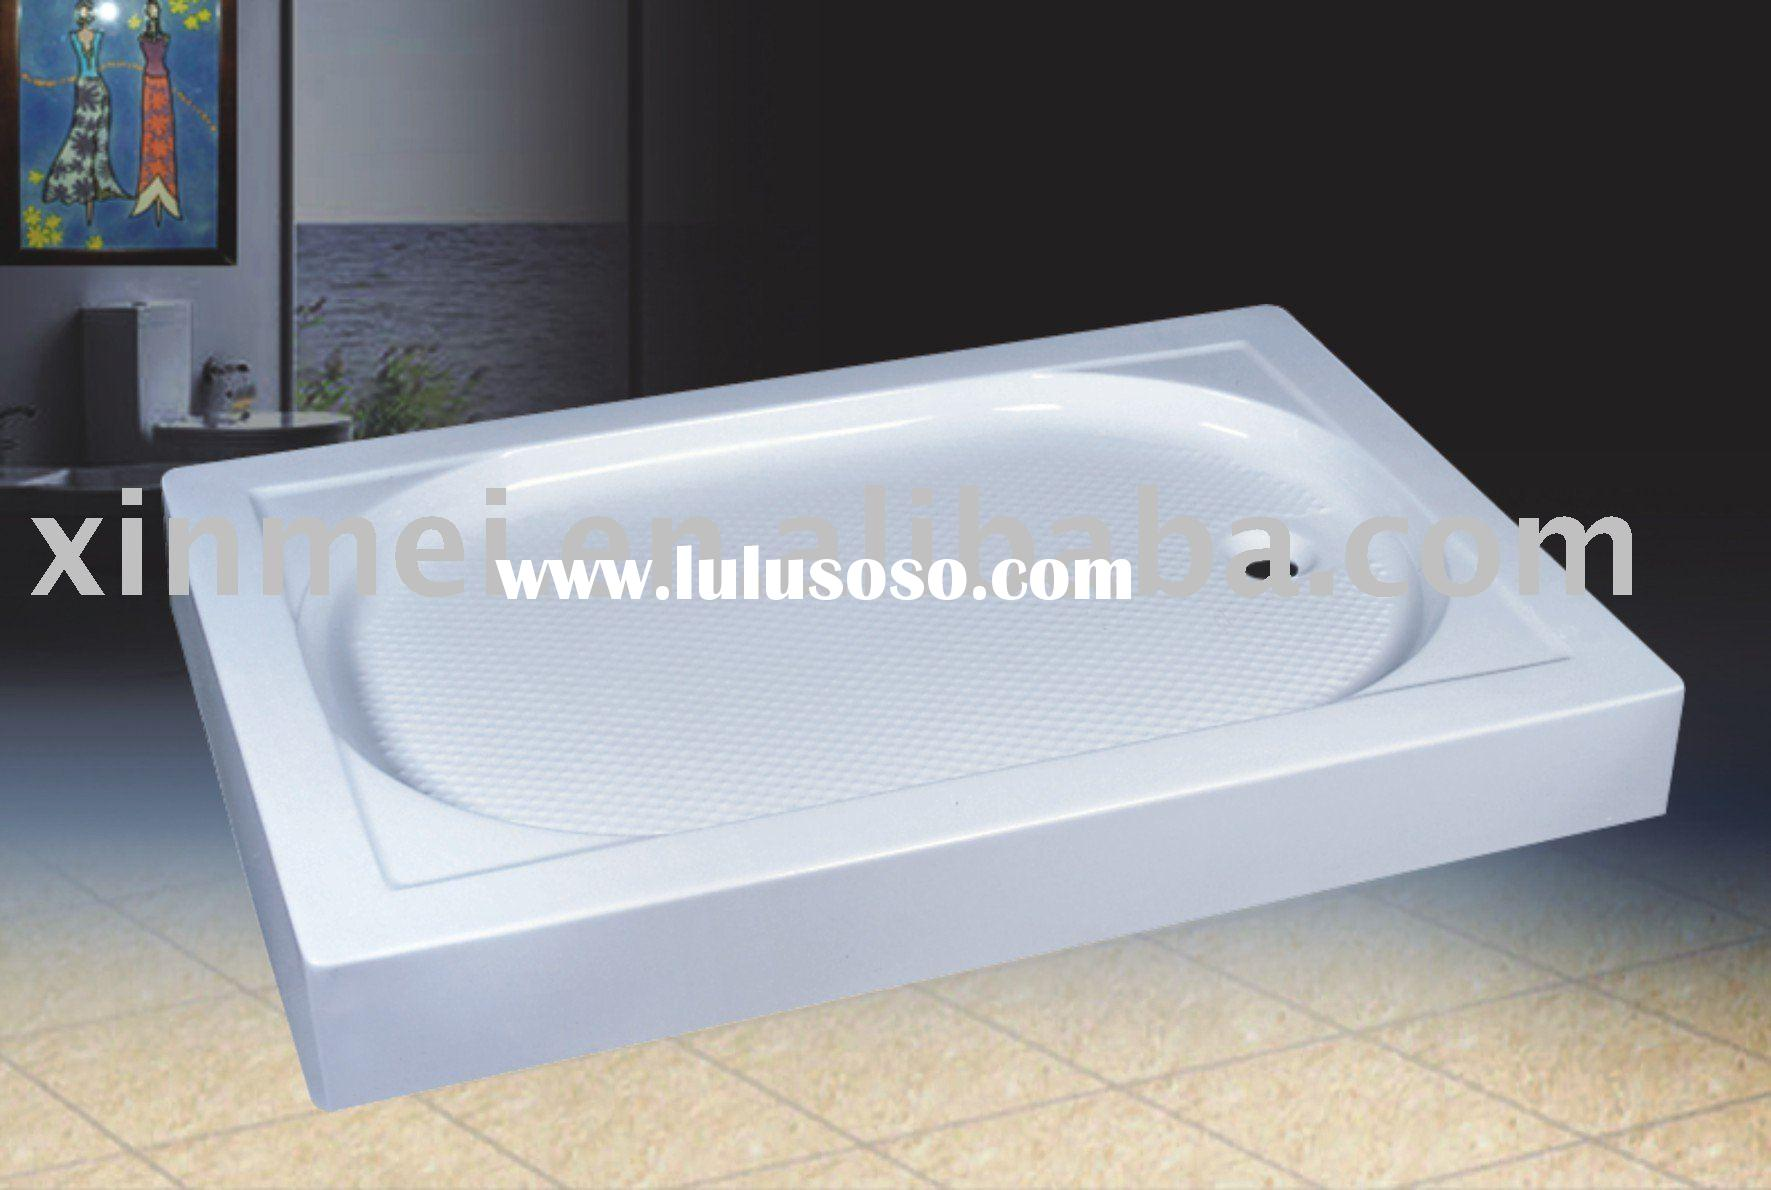 shower base tray, shower base tray Manufacturers in LuLuSoSo.com ...